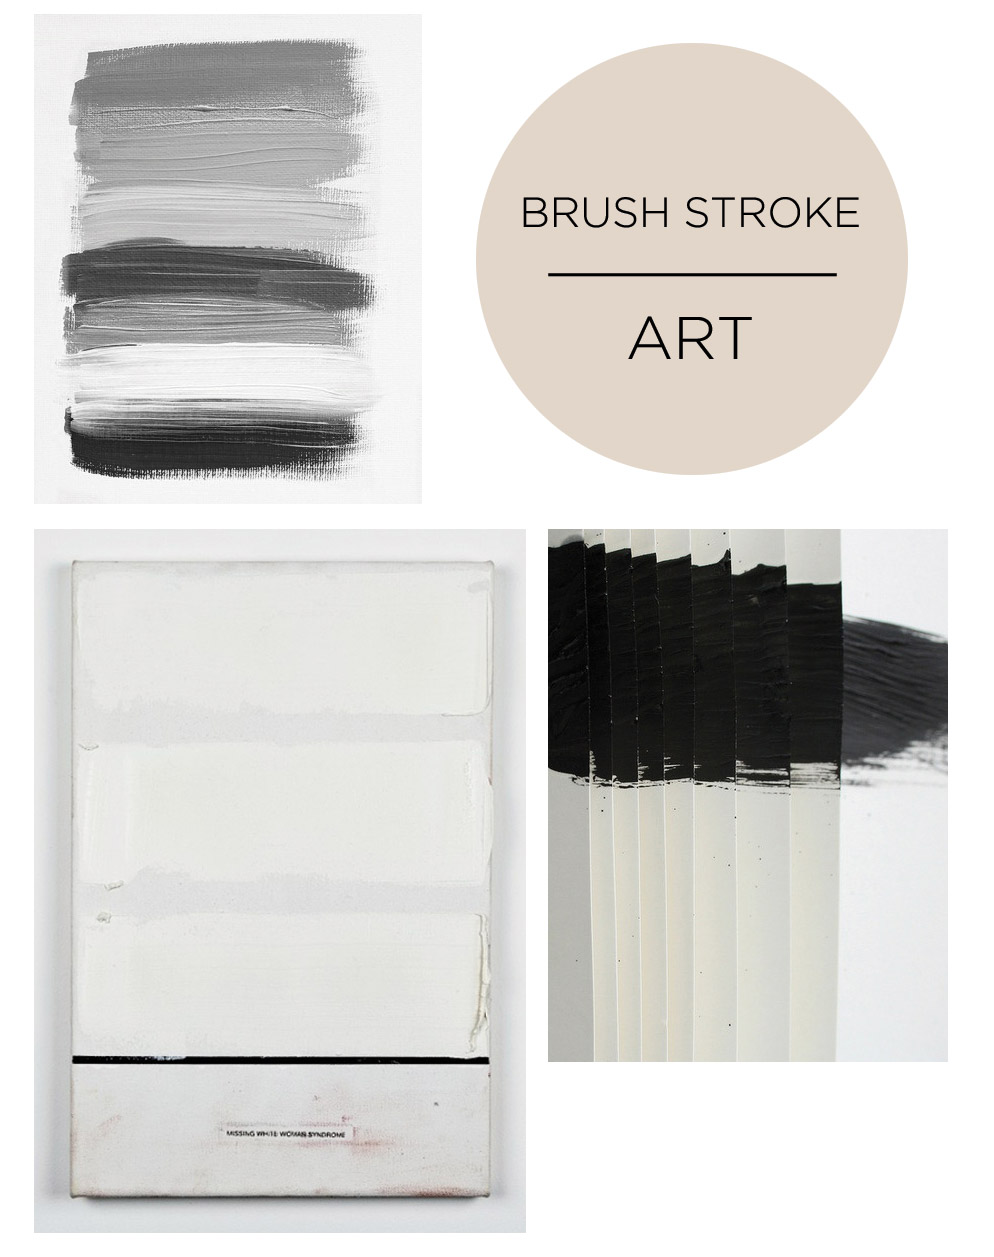 BRUSH-STROKE-ART